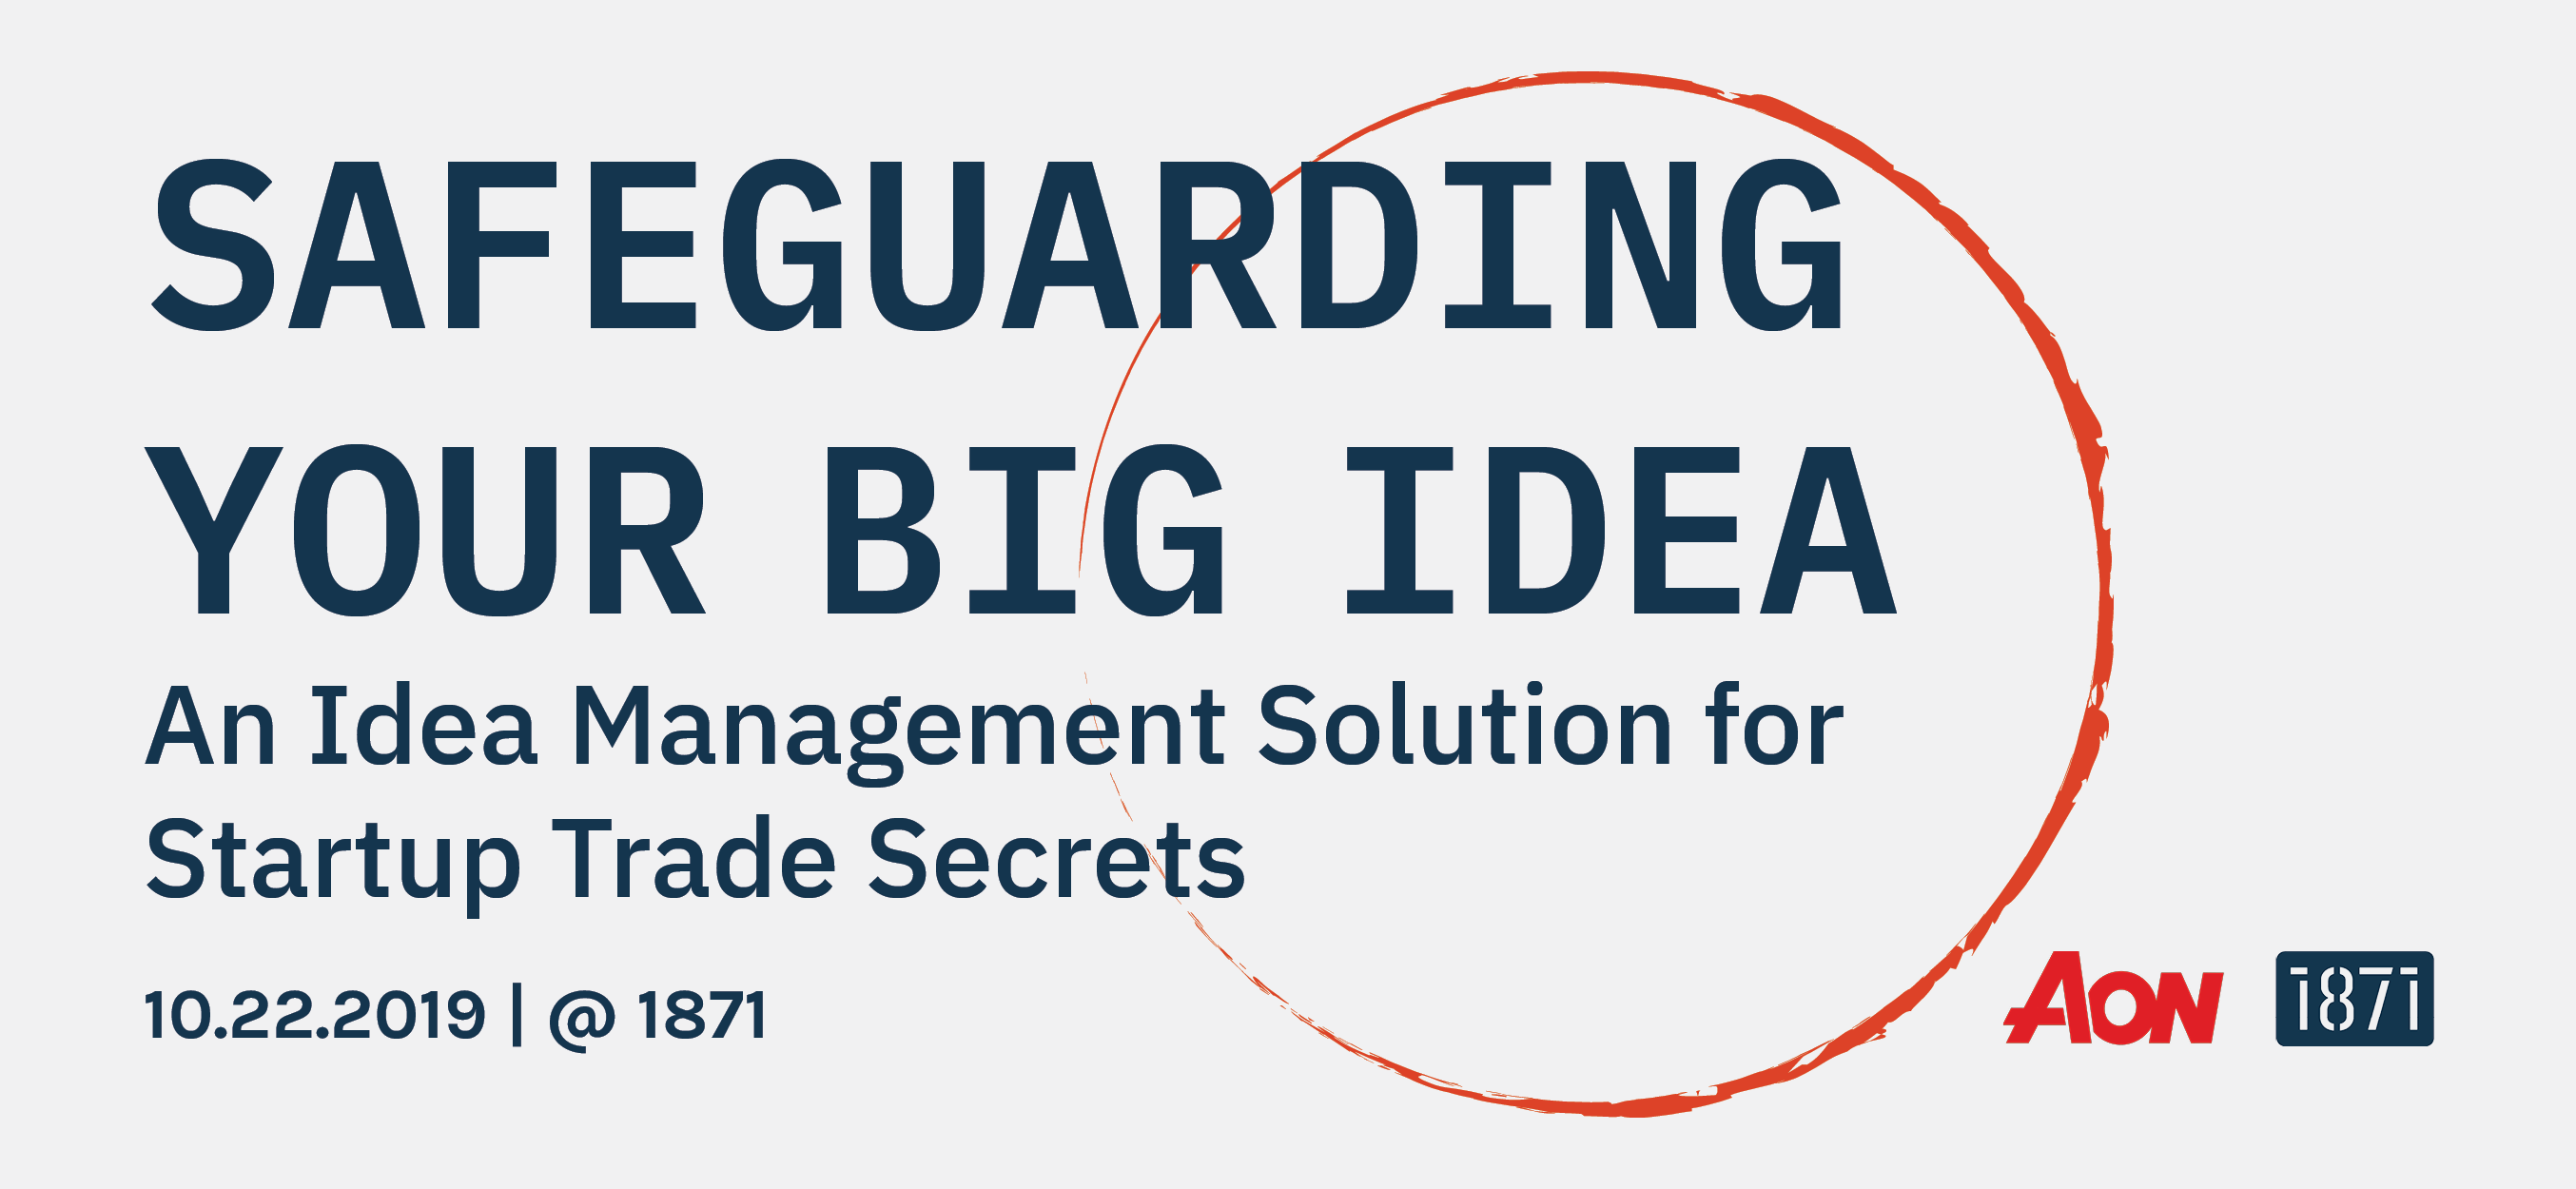 Safeguarding Your Big Idea